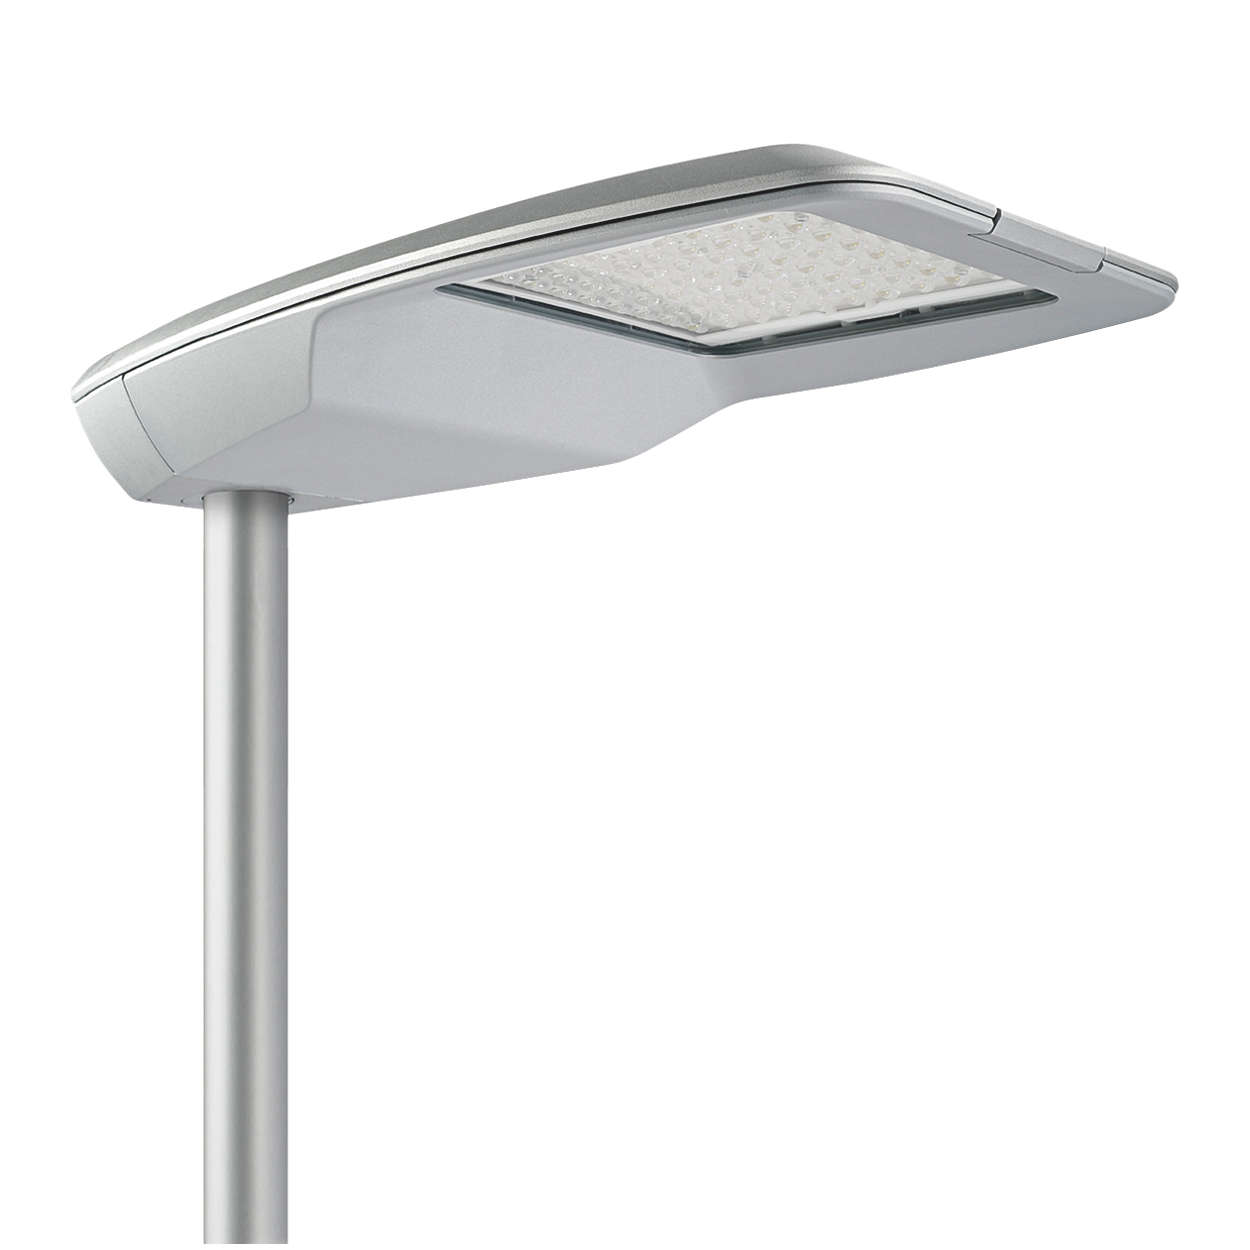 SpeedStar – Class leading LED lighting